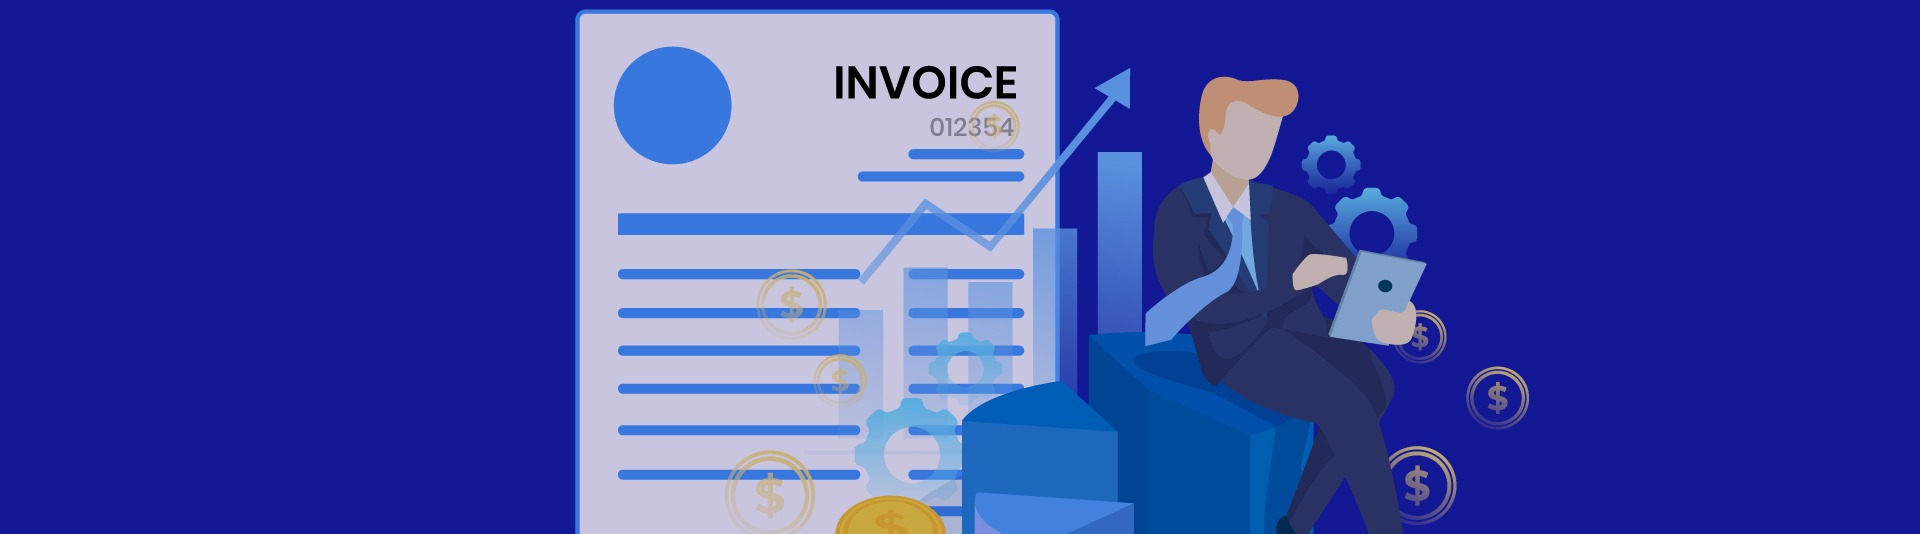 create a Commercial Invoice